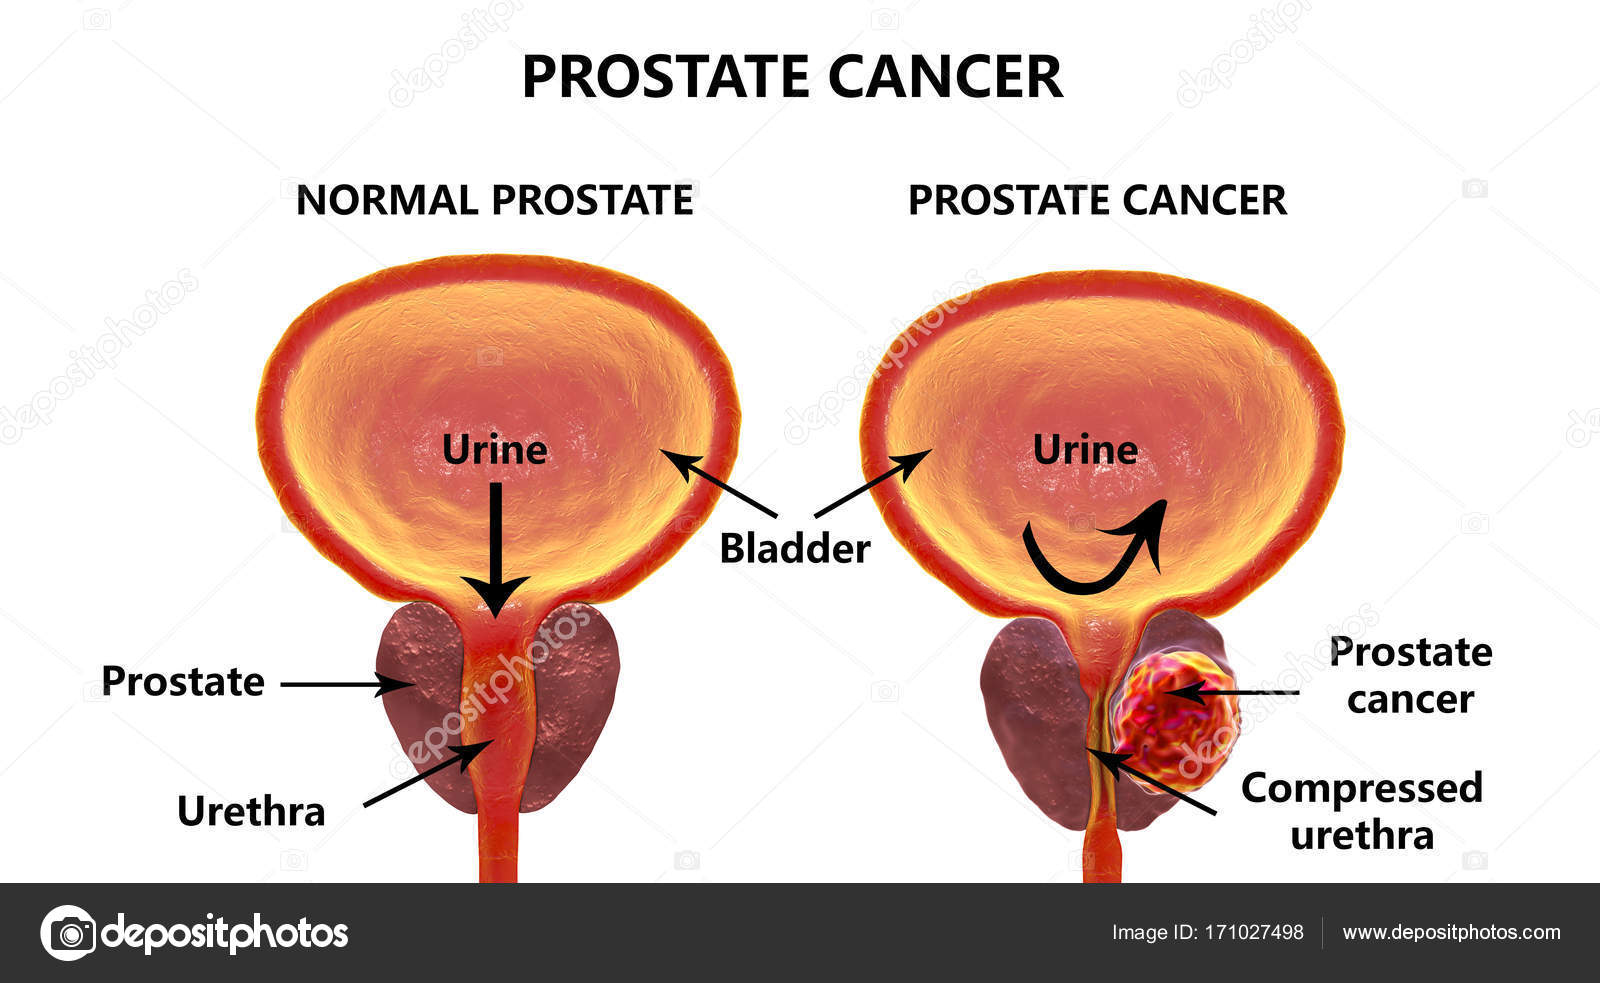 hight resolution of prostate cancer 3d illustration showing normal prostate gland and presence of tumor inside prostate gland which compresses urethra photo by katerynakon